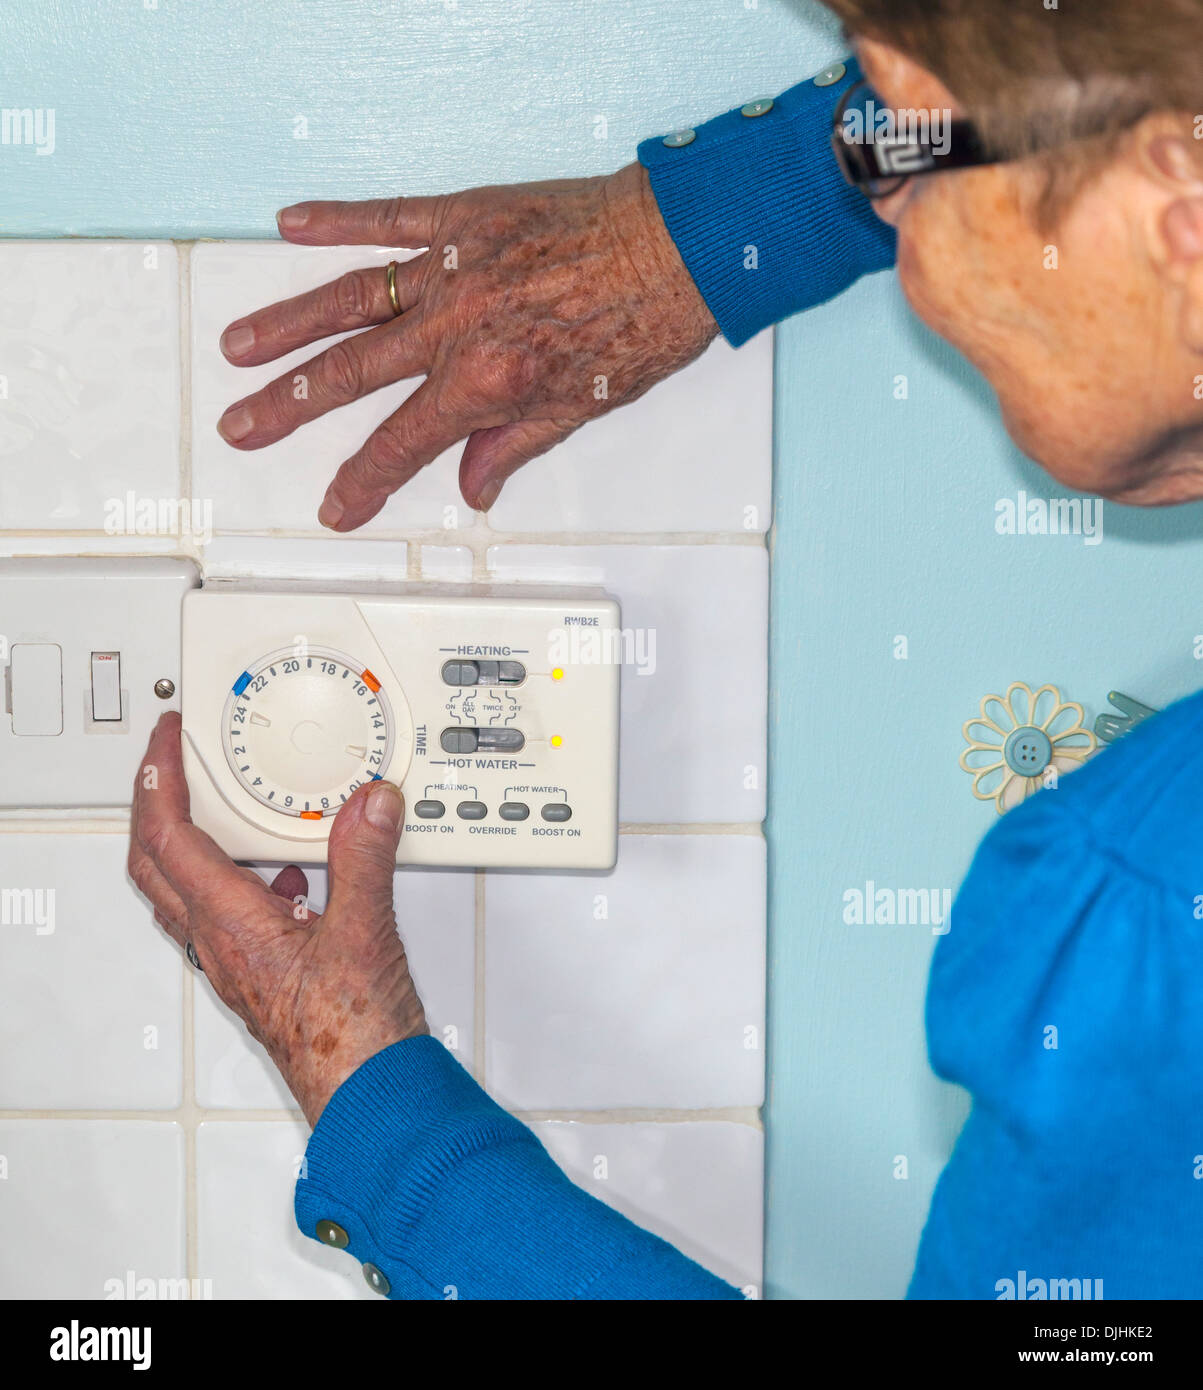 Central Heating Stock Photos & Central Heating Stock Images - Alamy